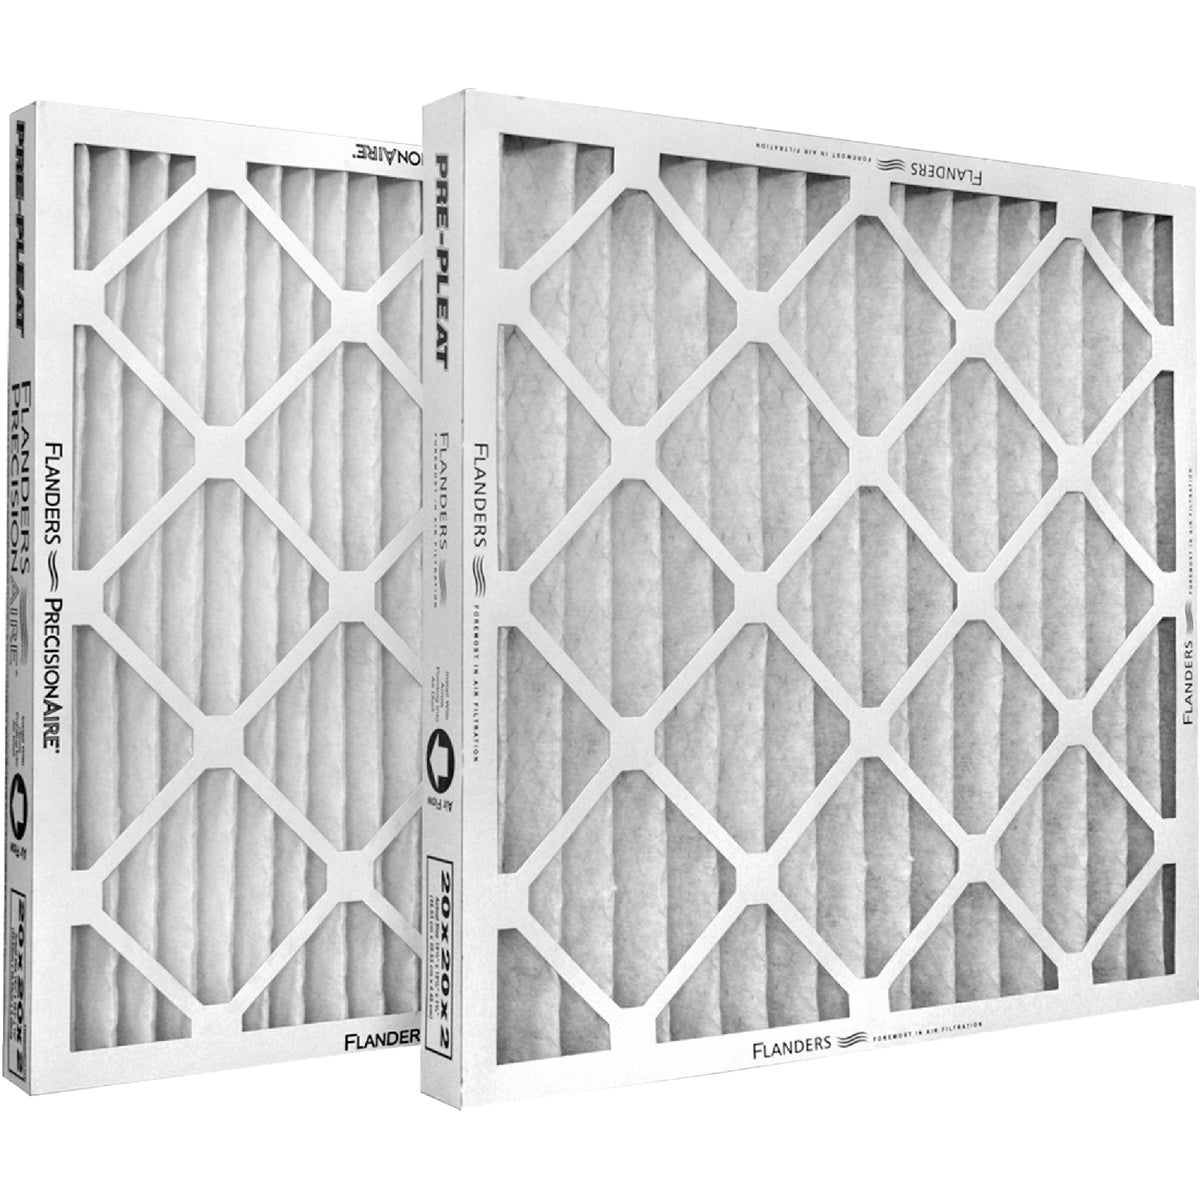 16X25X2 FURNACE FILTER - 80055.021625 by Flanders Corp